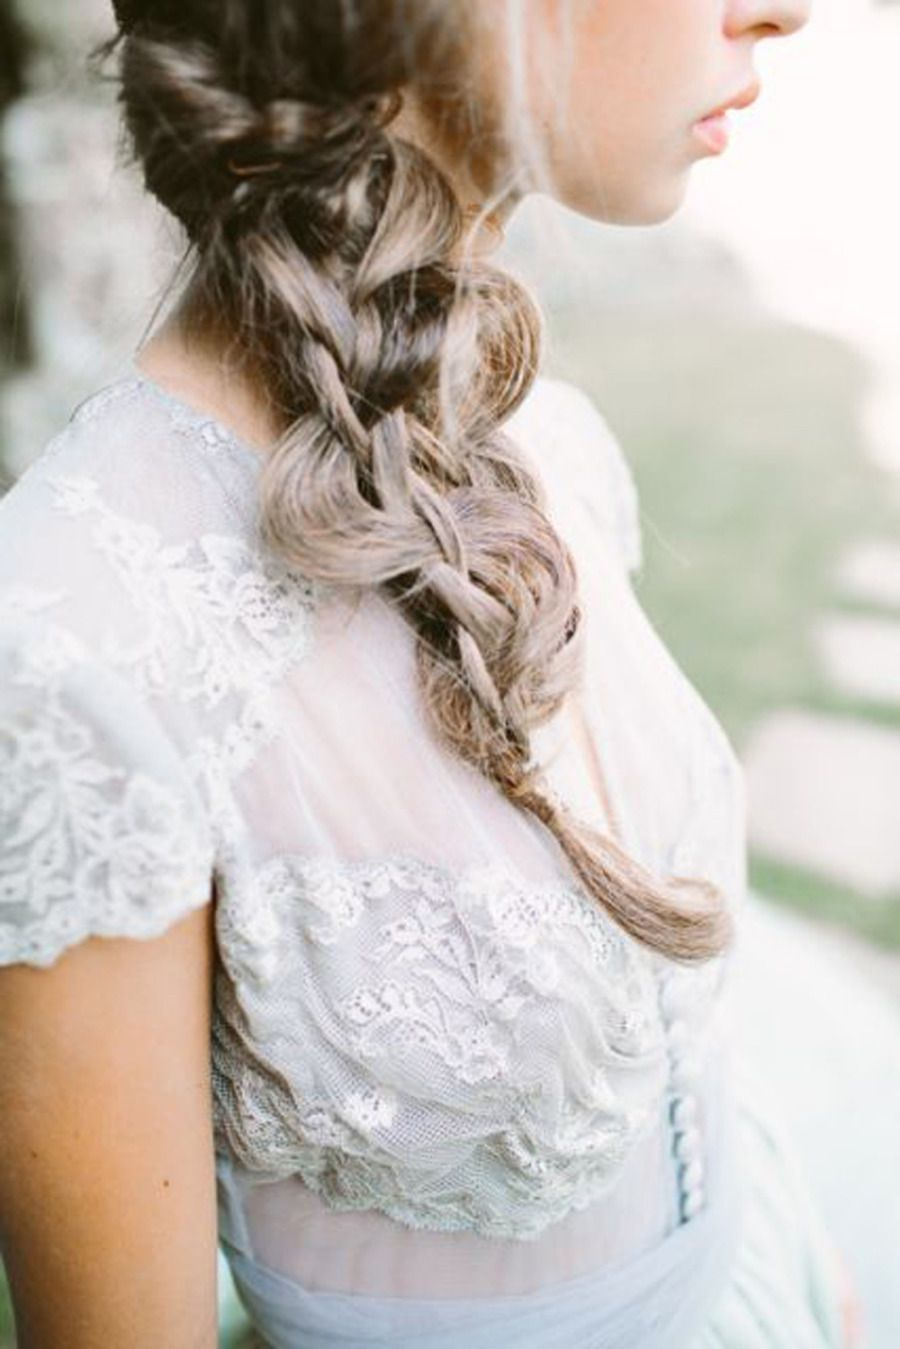 Romantic Grey & Gold Wedding Inspiration | Braid hair, Gold weddings ...